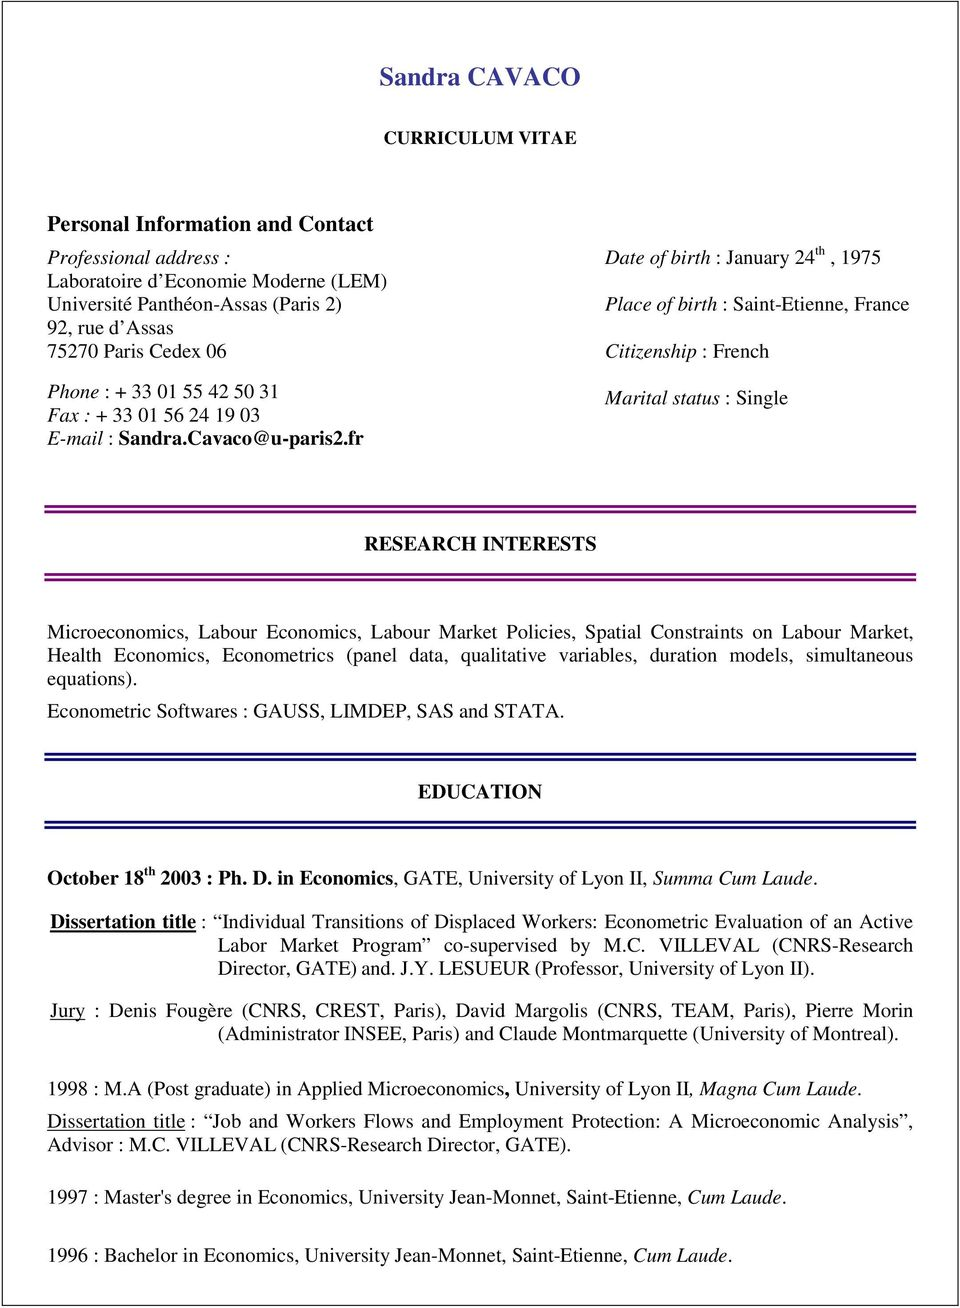 Sandra Cavaco Curriculum Vitae Research Interests Pdf